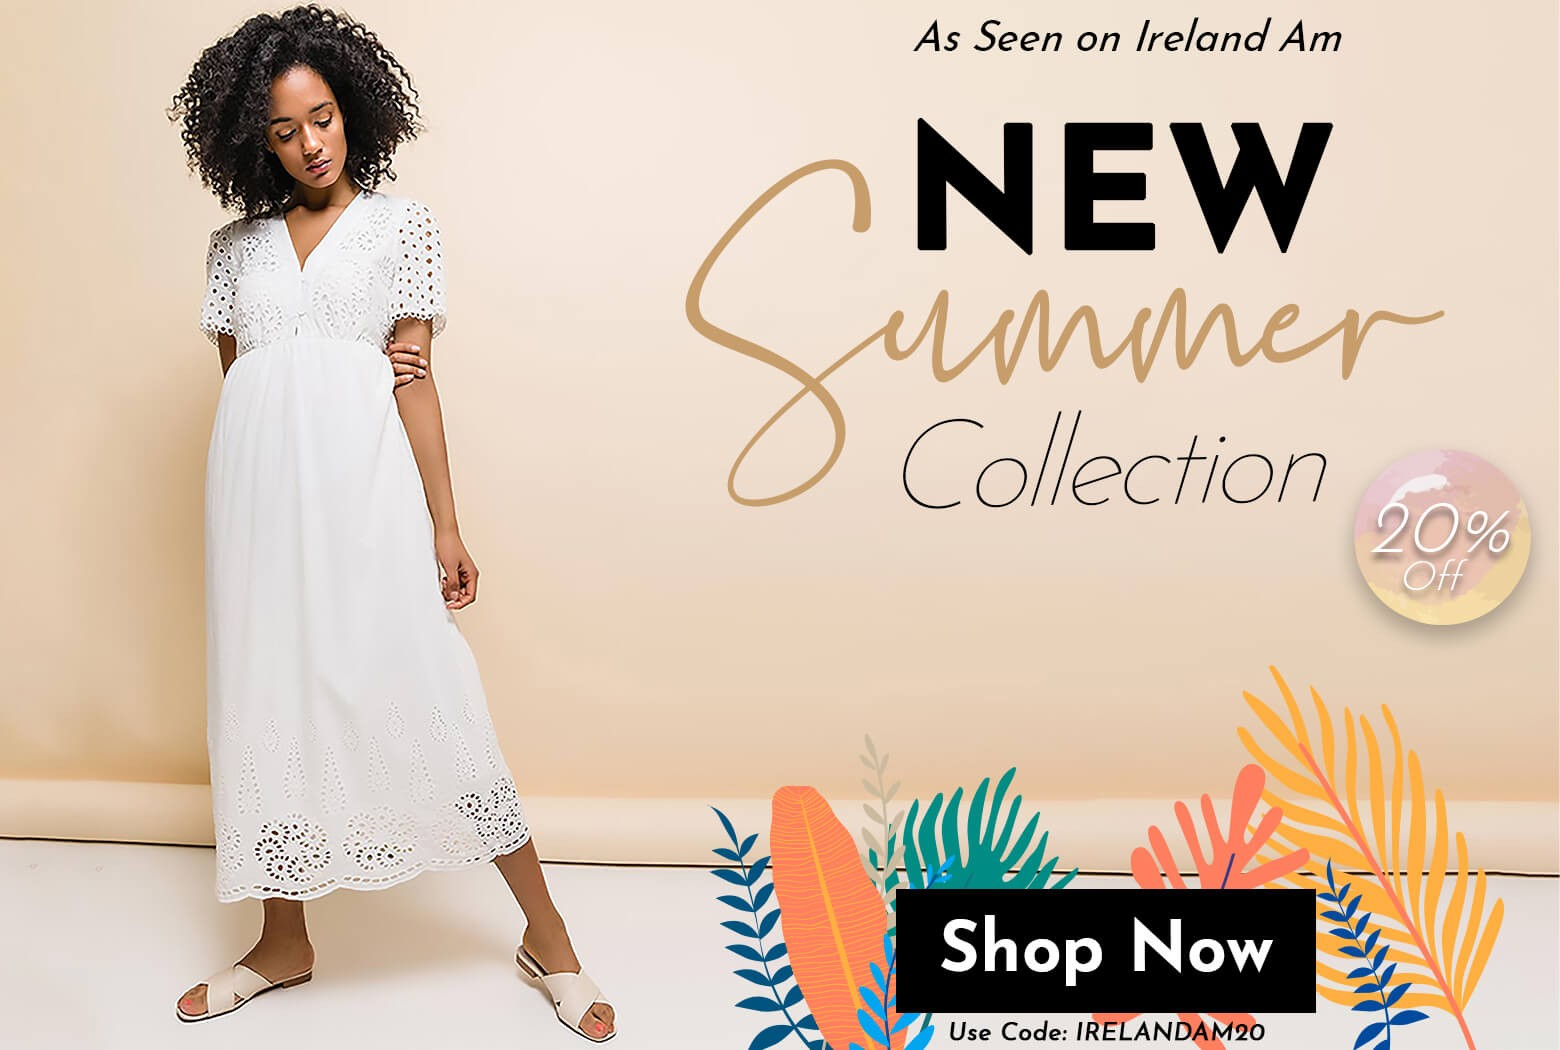 Summer Collection As Seen on Ireland AM